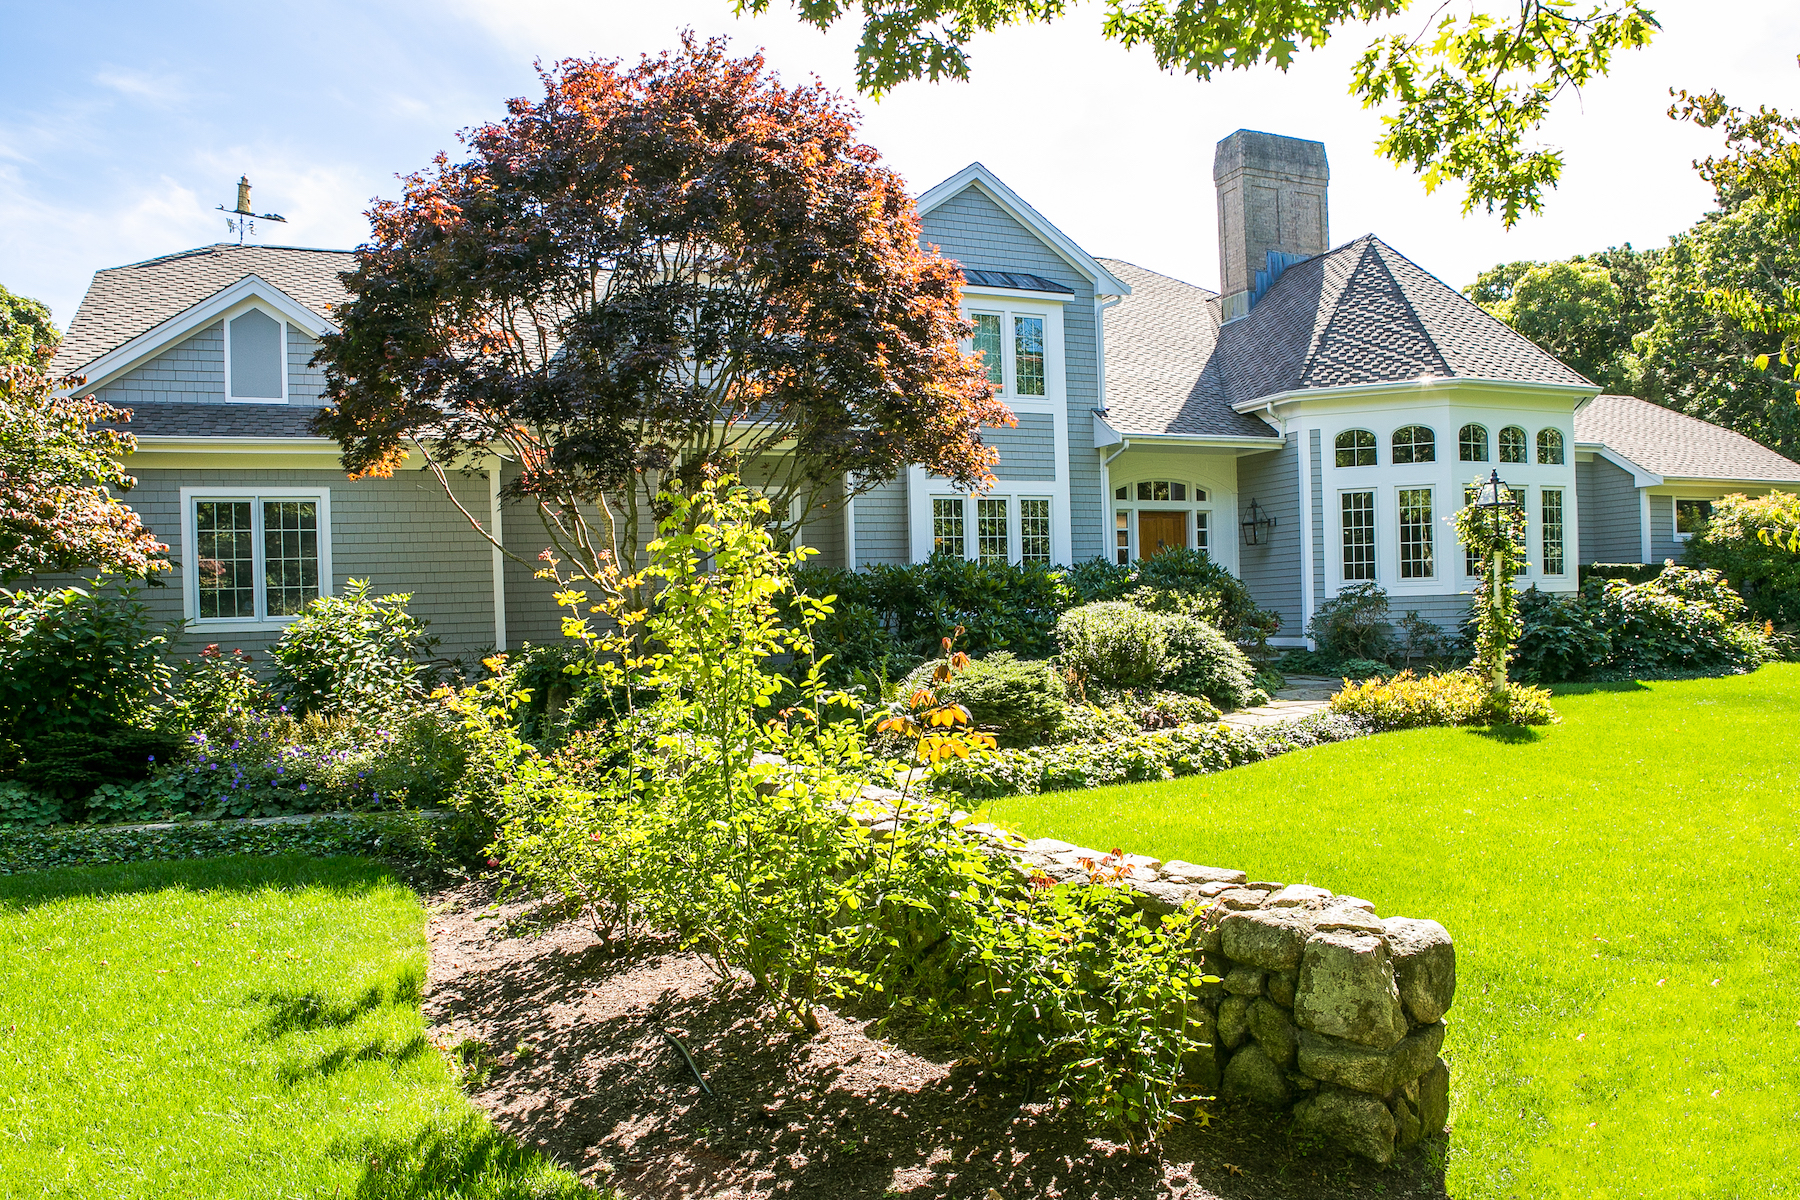 Single Family Home for Active at Stunning Coastal Home with Deepwater Dock 37 Witchwood Lane Edgartown, Massachusetts 02539 United States